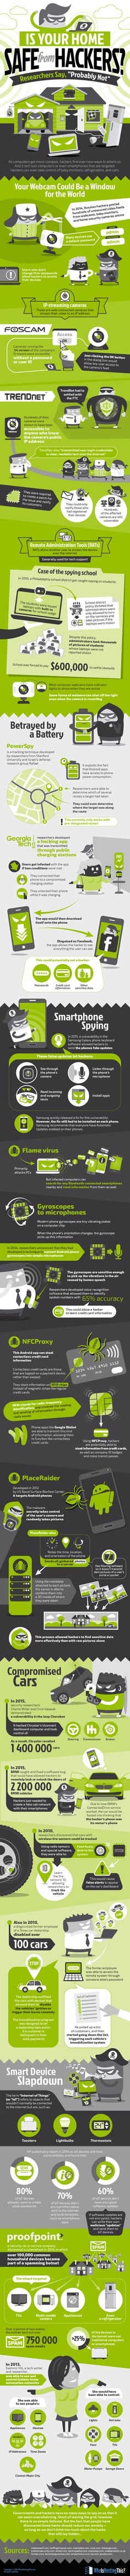 Is Your Home Safe From Hackers? #Infographic